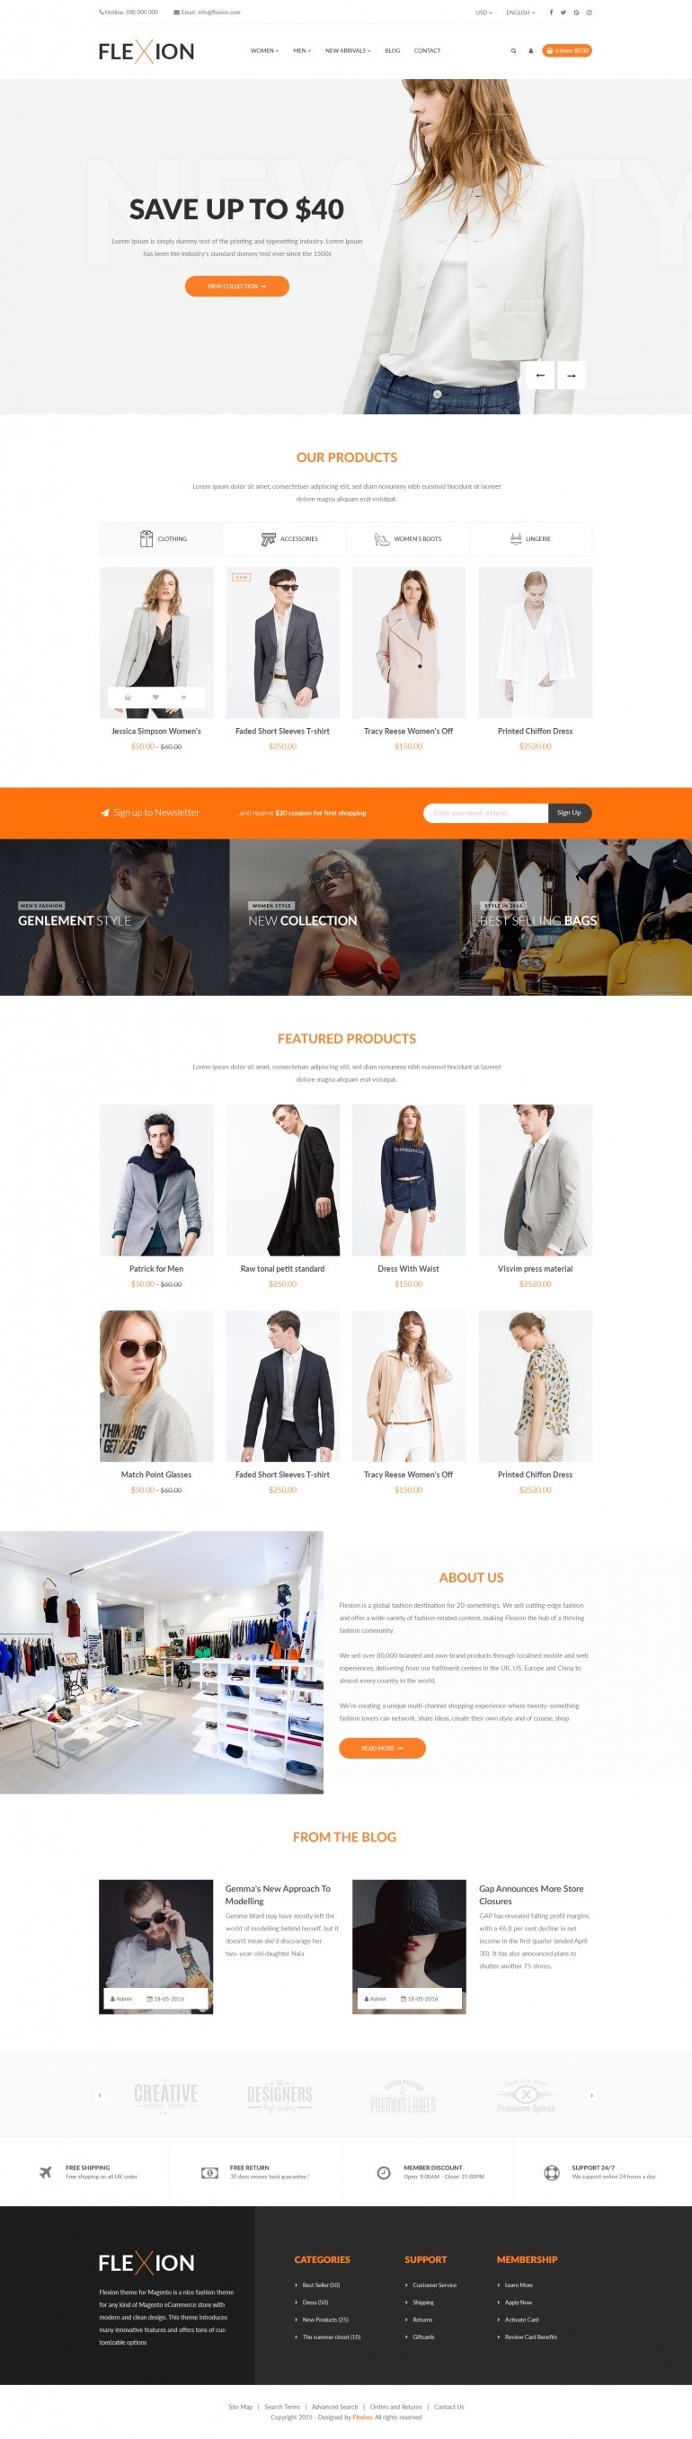 Flexion – Fashion E-Commerce Store